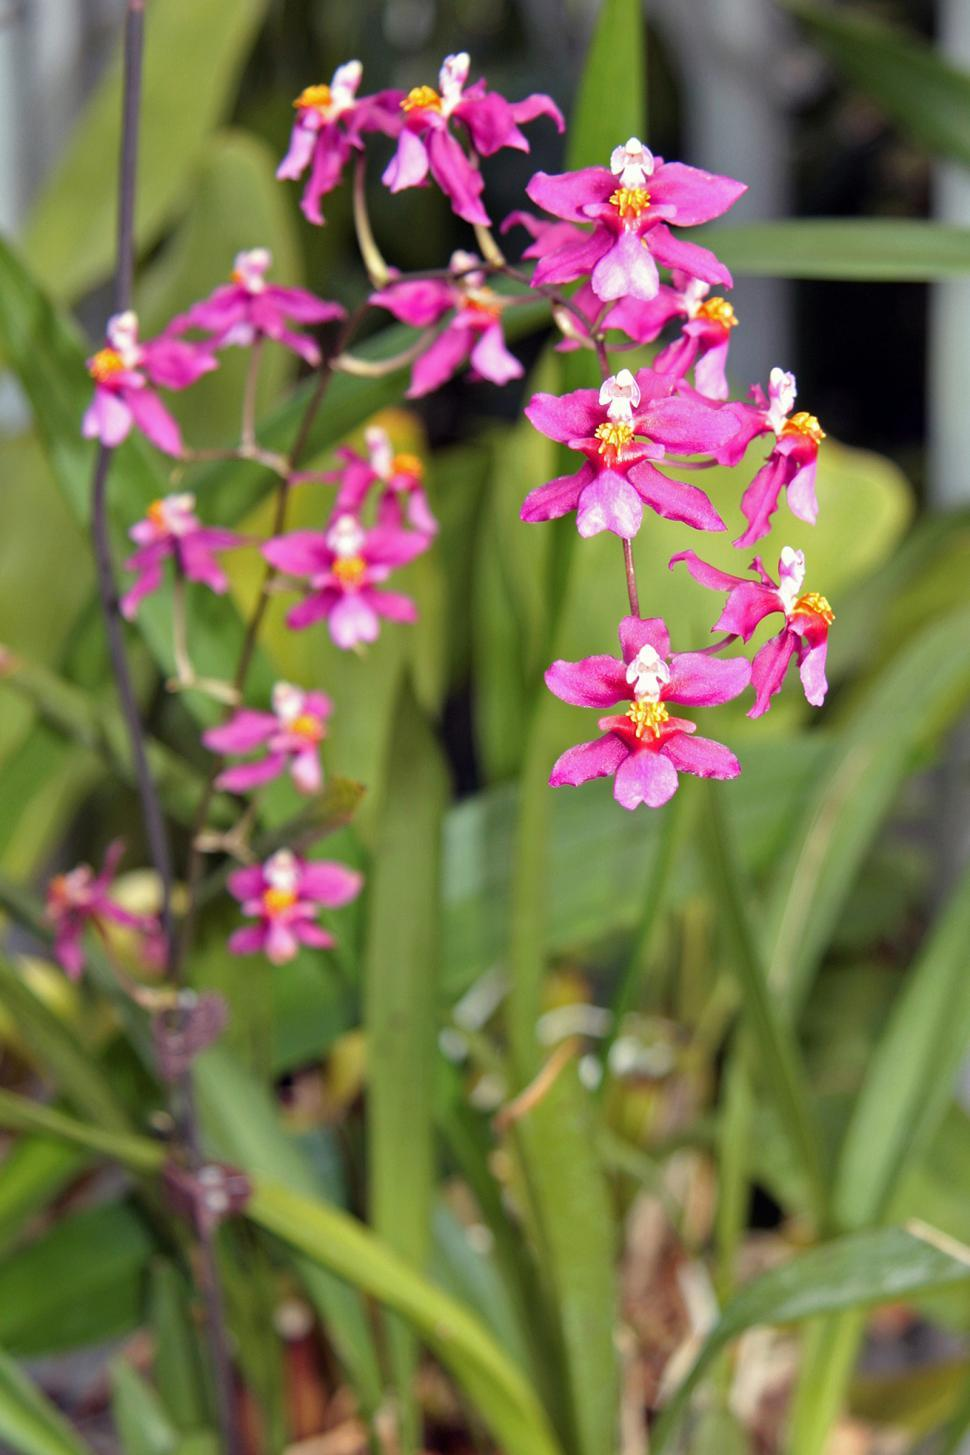 Free image of ncidium Twinkle Orchids in bloom inside Orchid House at Duke Farms, NJ.